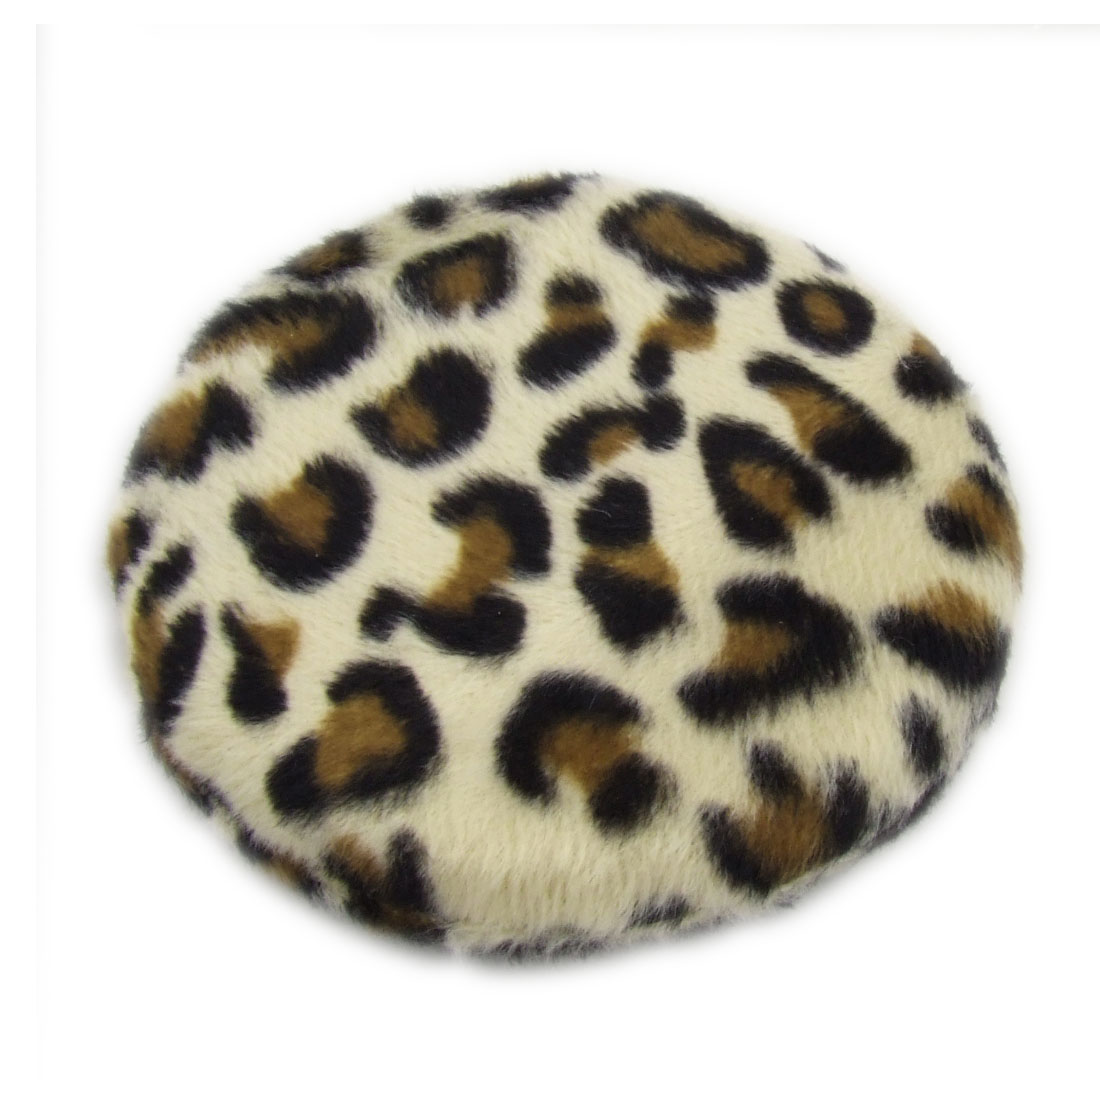 Round Leopard Pattern Facial Makeup Powder Puff Pad for Lady